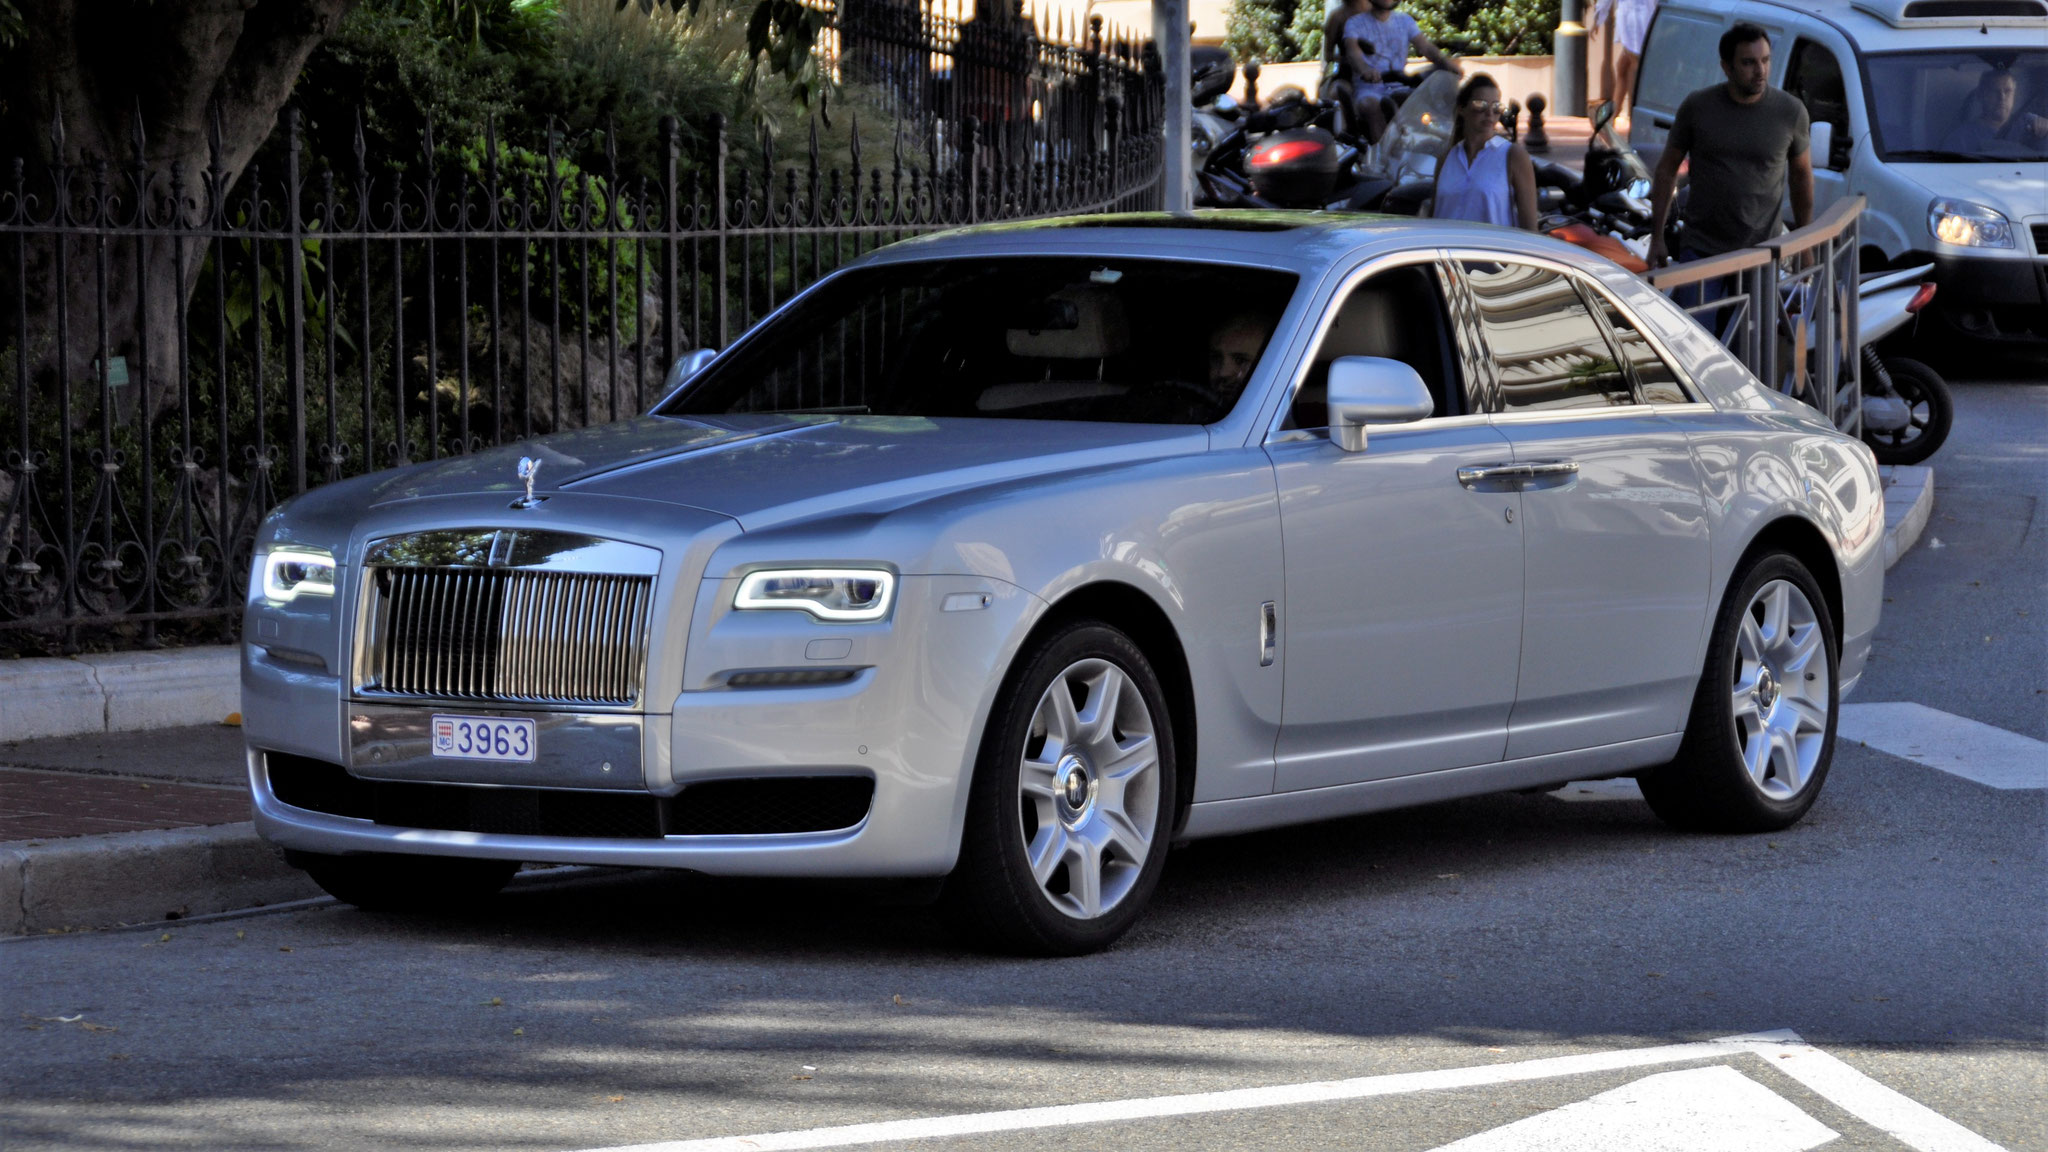 Rolls Royce Ghost Series II - 3963 (MC)